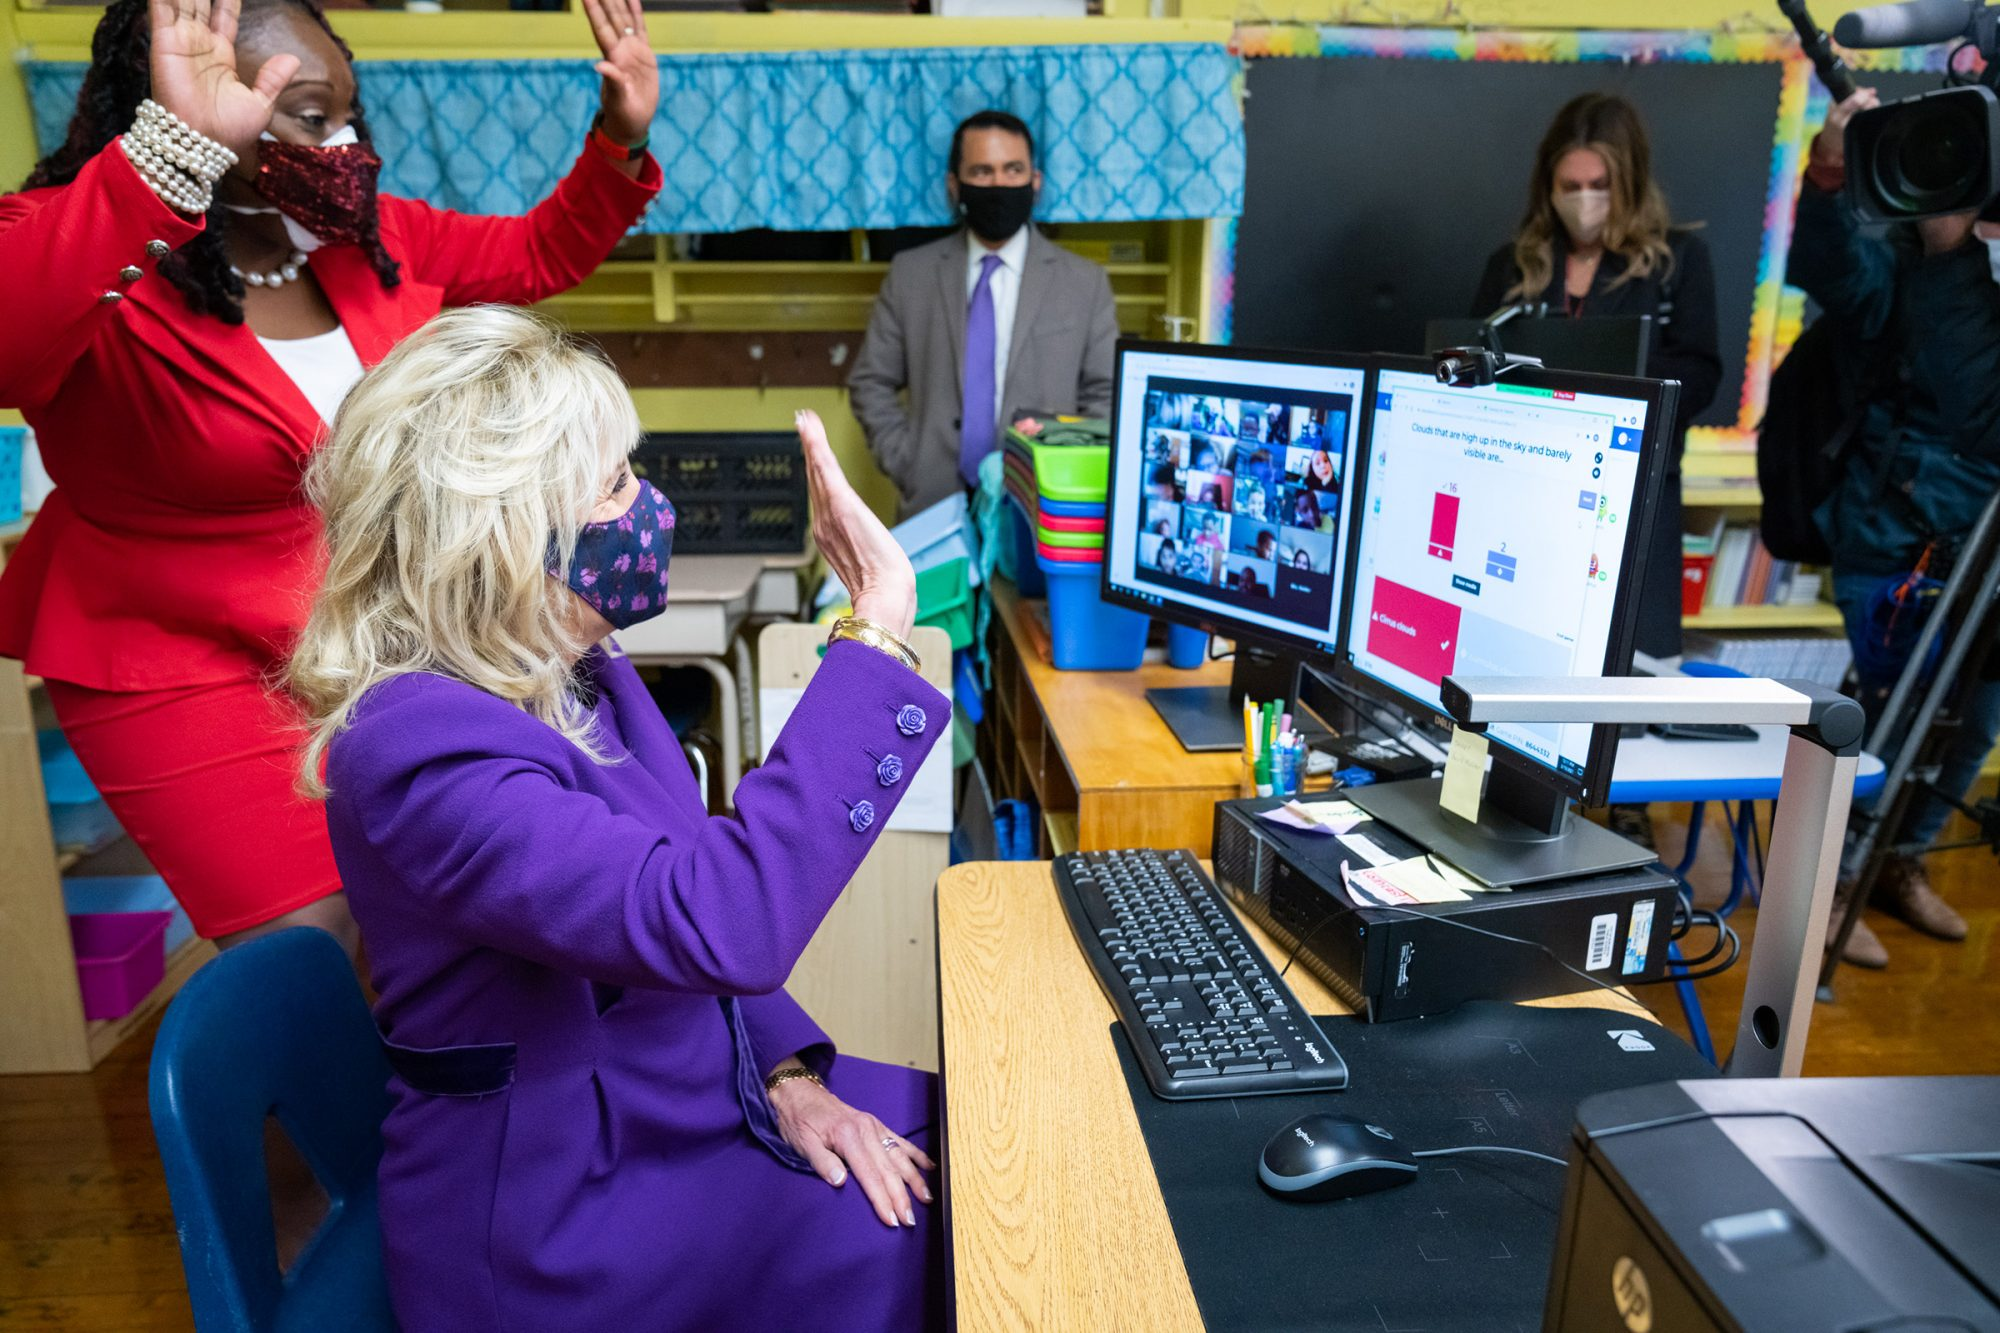 First Lady Jill Biden waves at second grade students who are attending class virtually Monday, March 15, 2021, during her tour at the Samuel Smith Elementary School in Burlington, New Jersey.